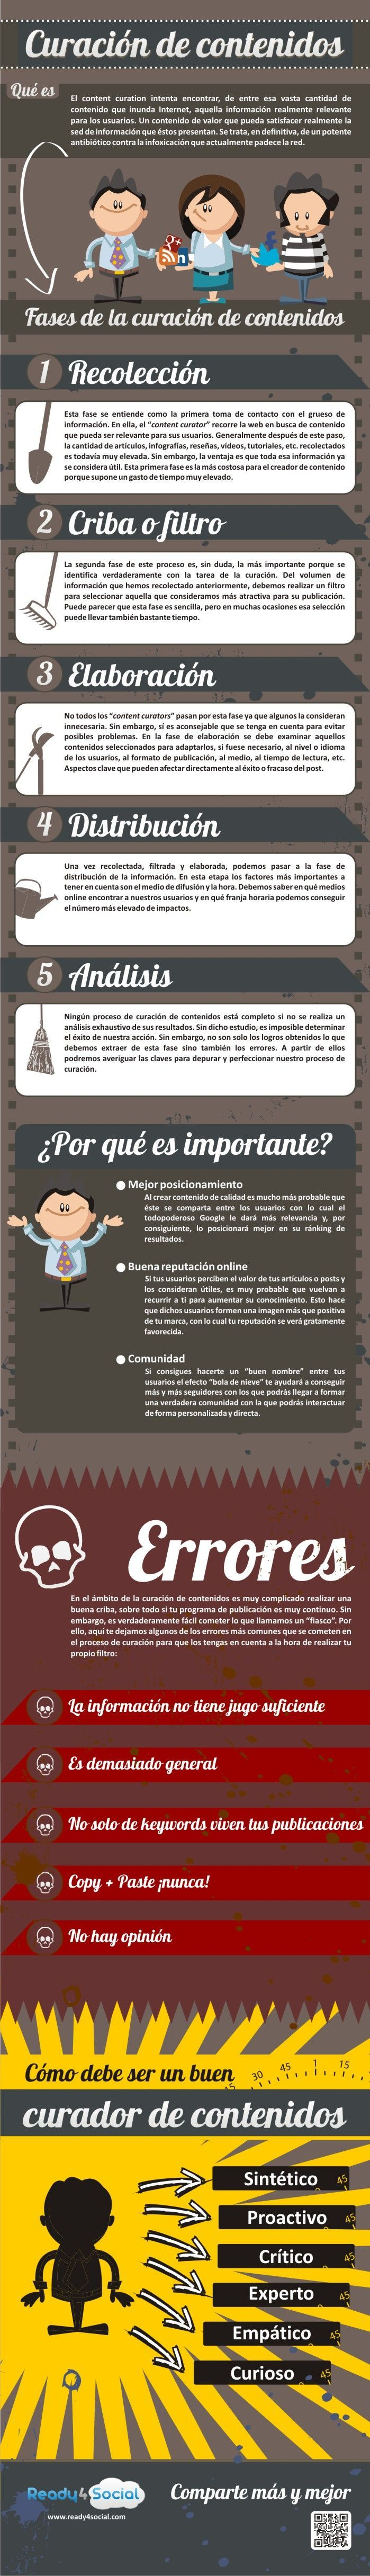 ¿Content curator?... ¿content curation?... DO-CU-MEN-TA-LIS-TA